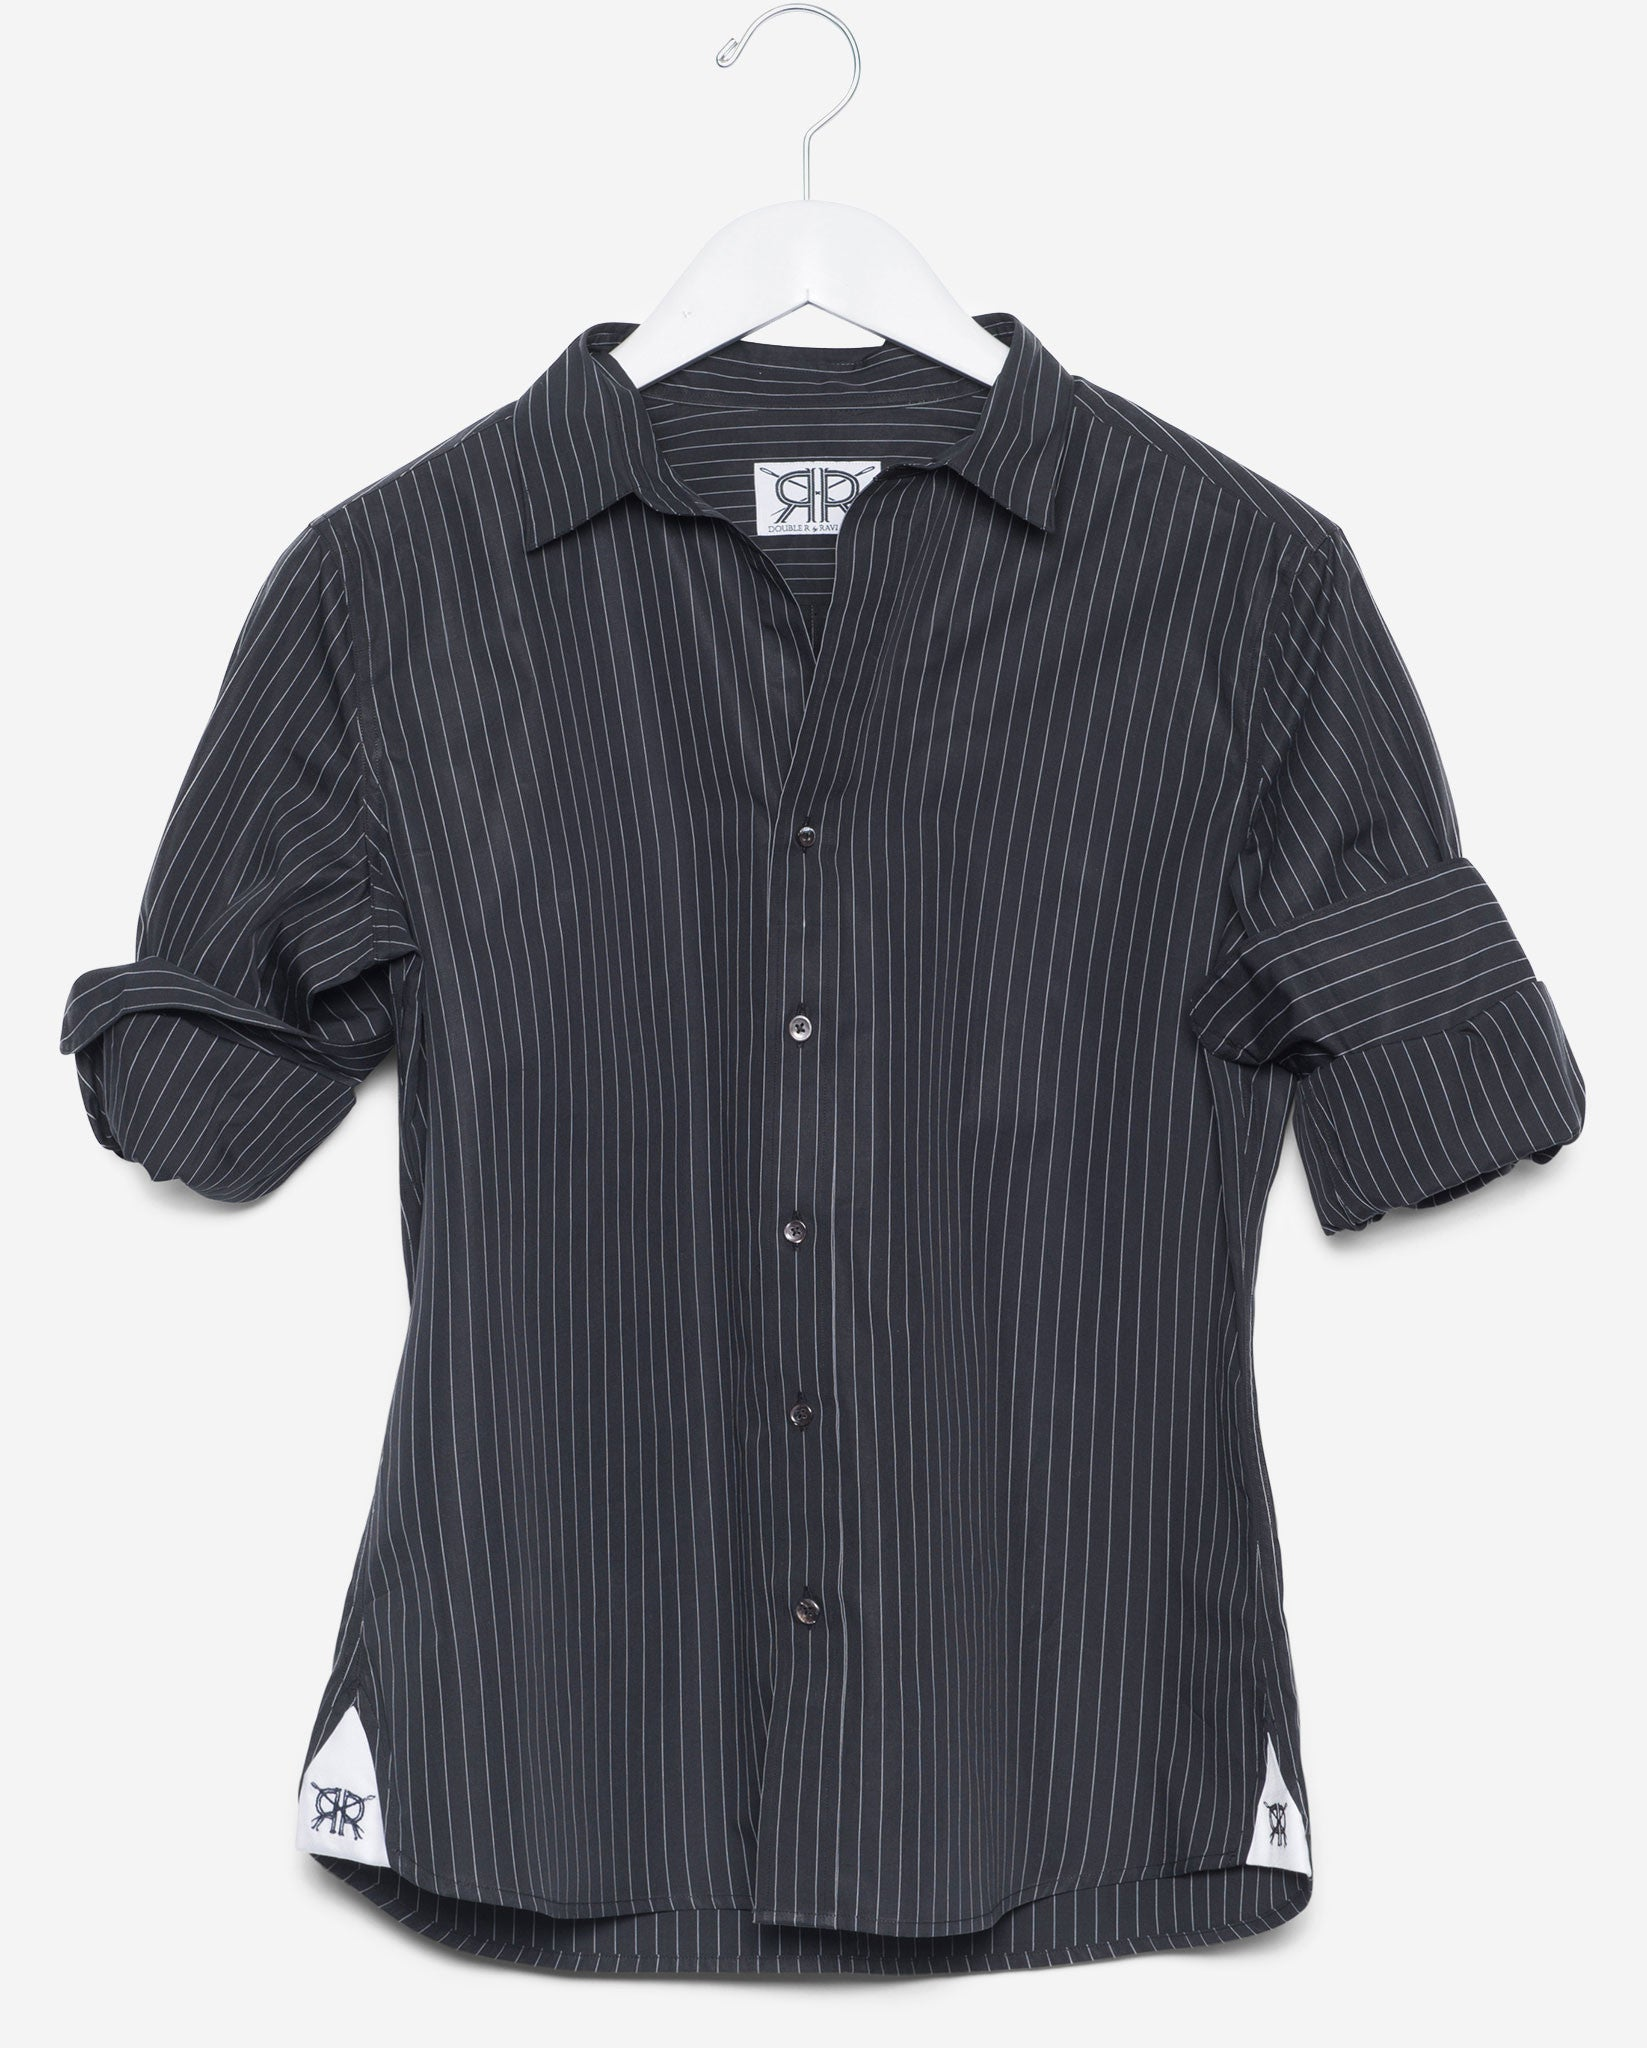 0d3bcf60bc4 Tailored - Black with White Pinstripe